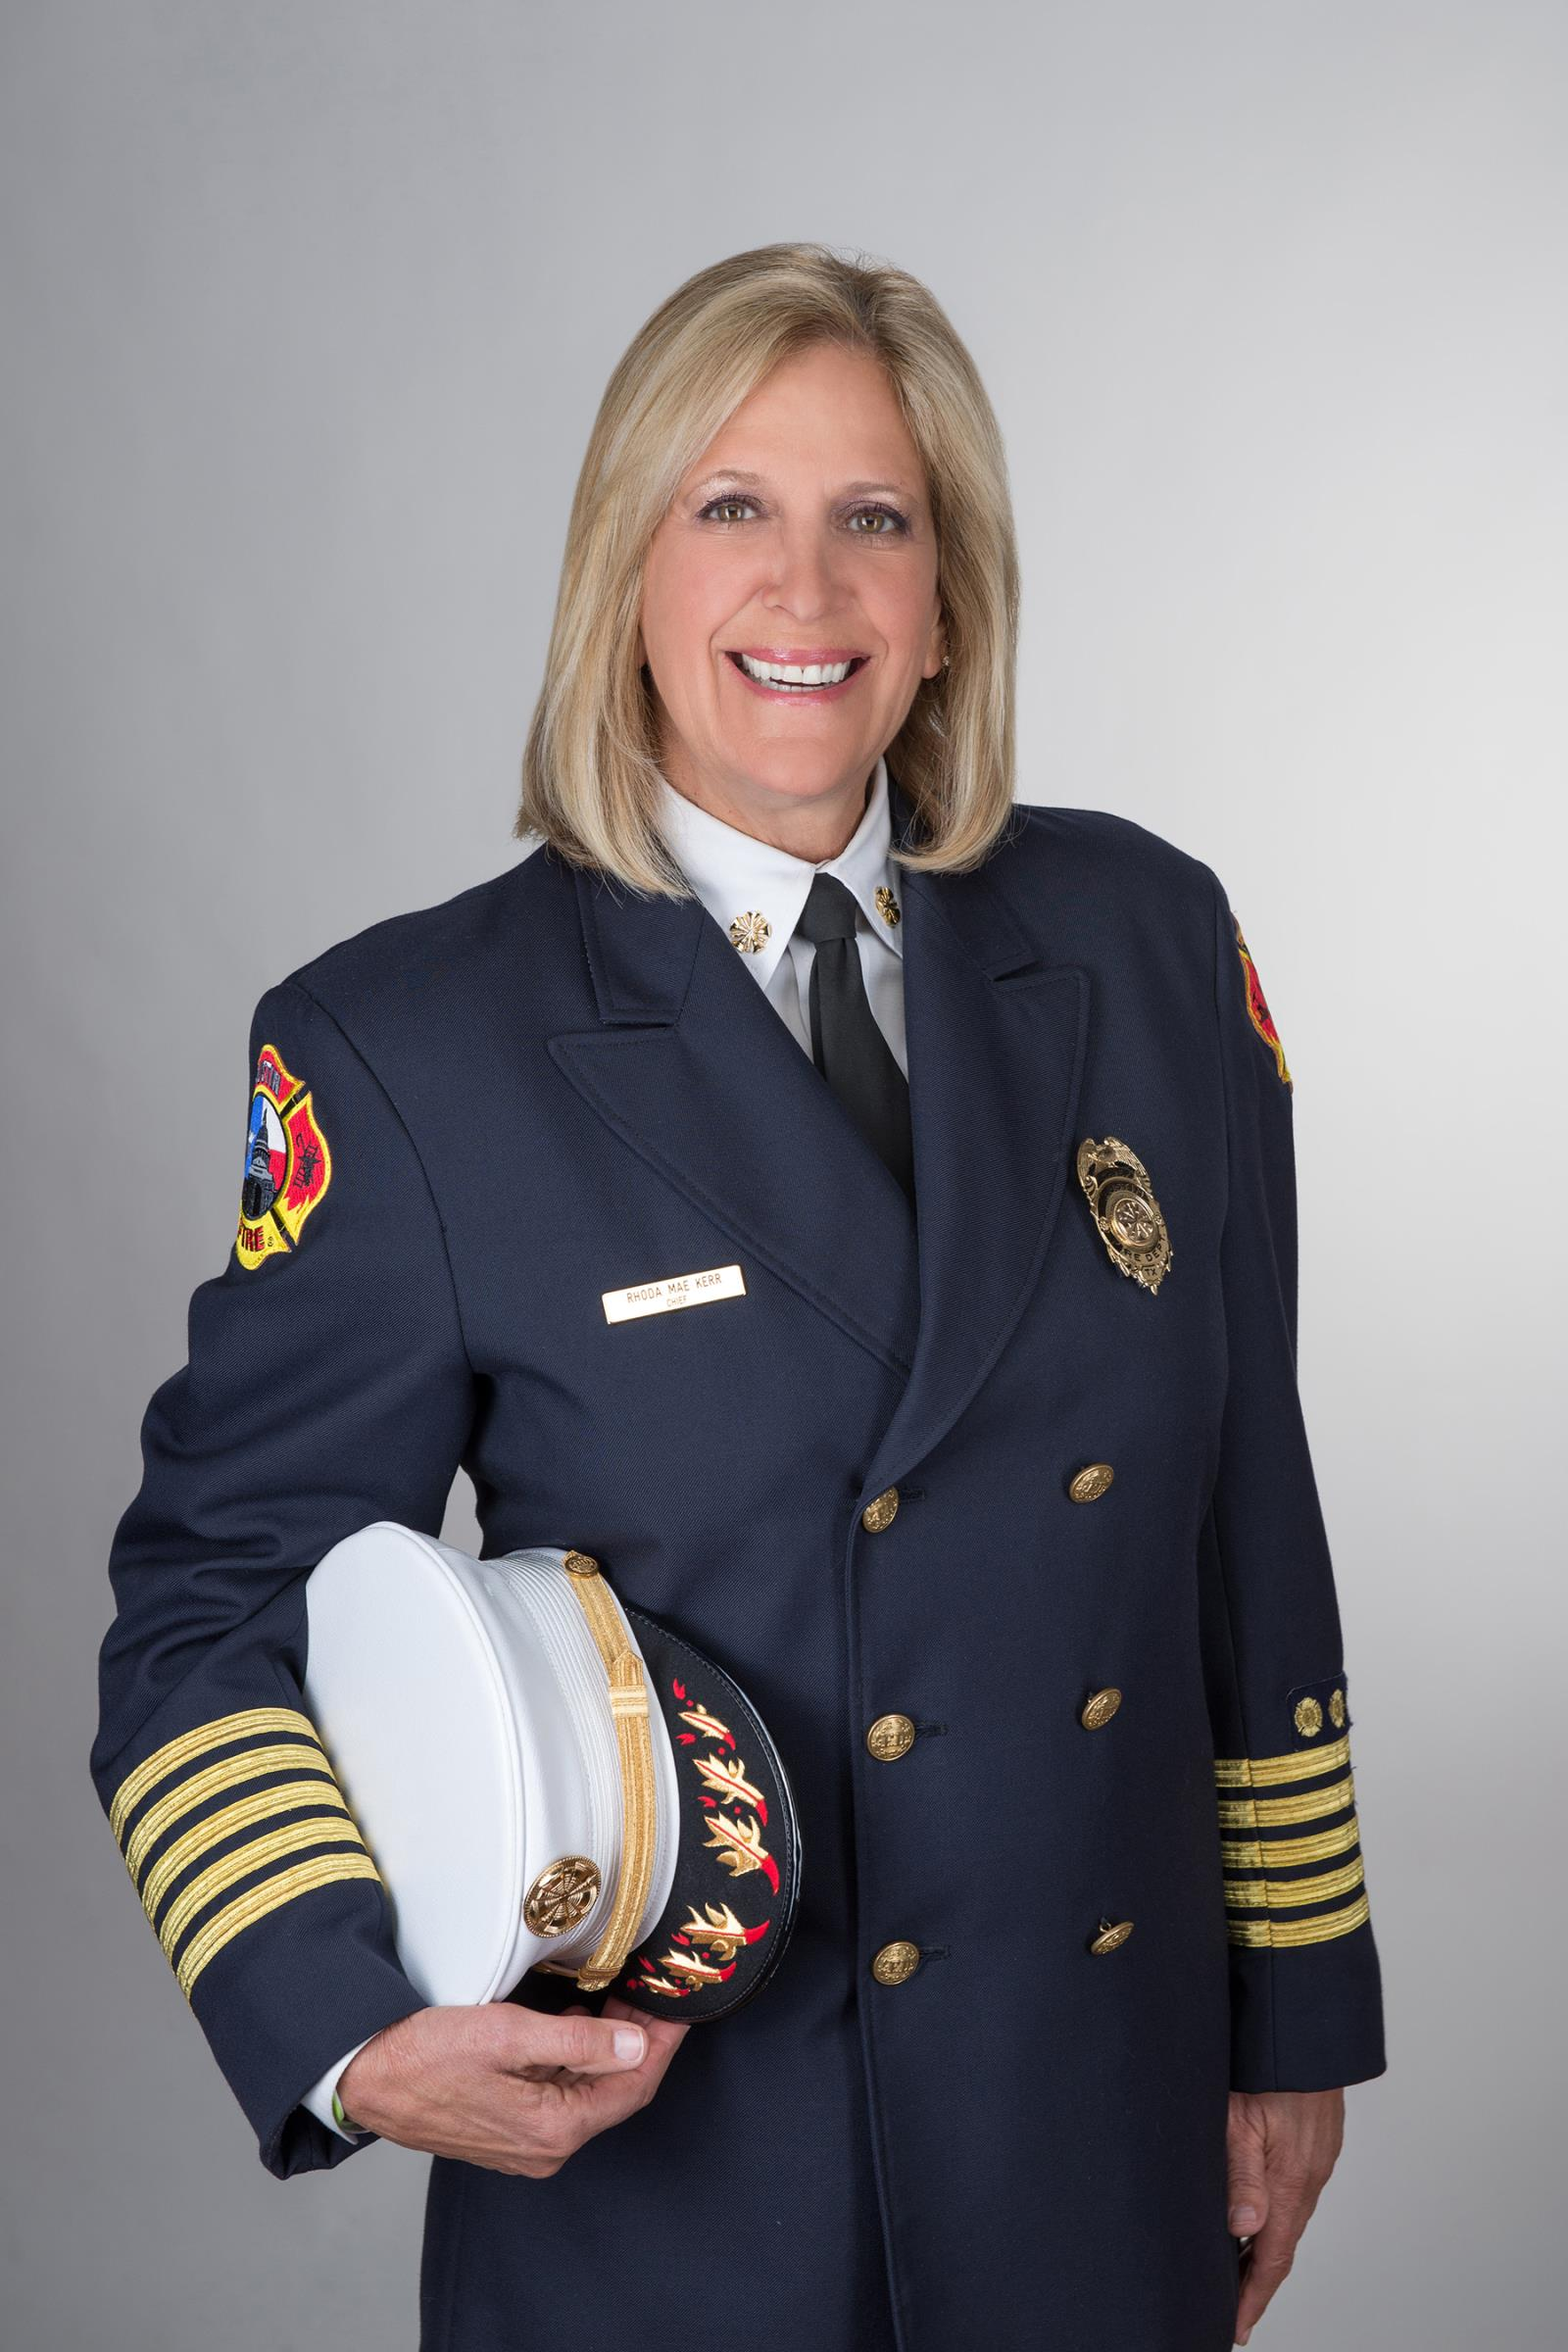 City of Fort Lauderdale, FL : City News : City Manager Names